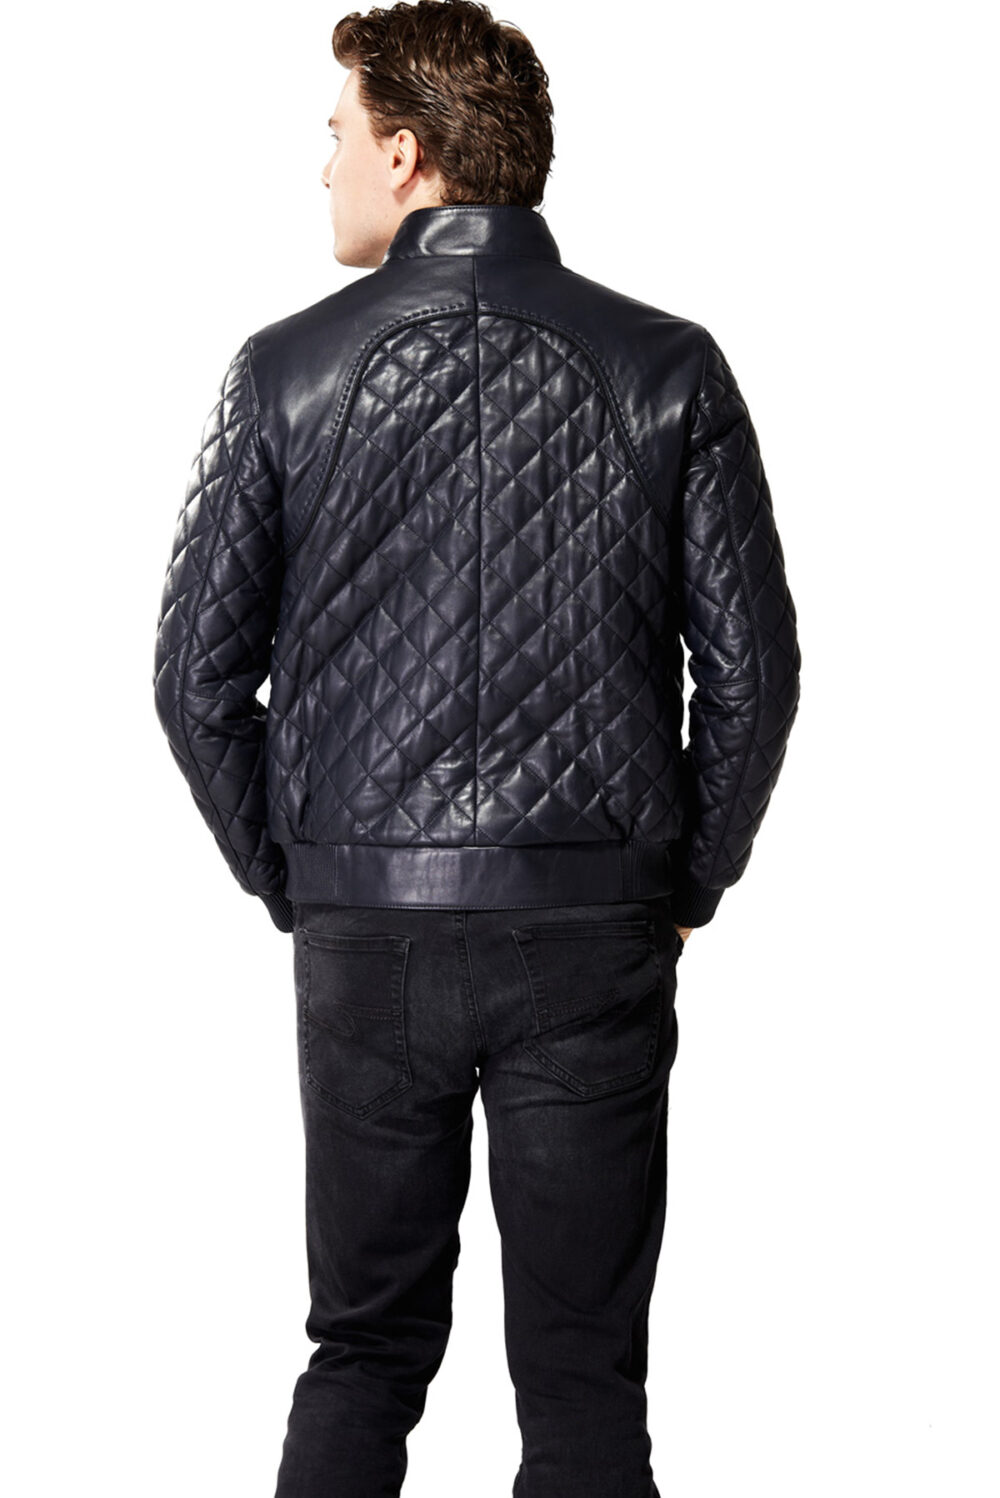 The Classic Diamond Quilted Black Men's Leather Jacket